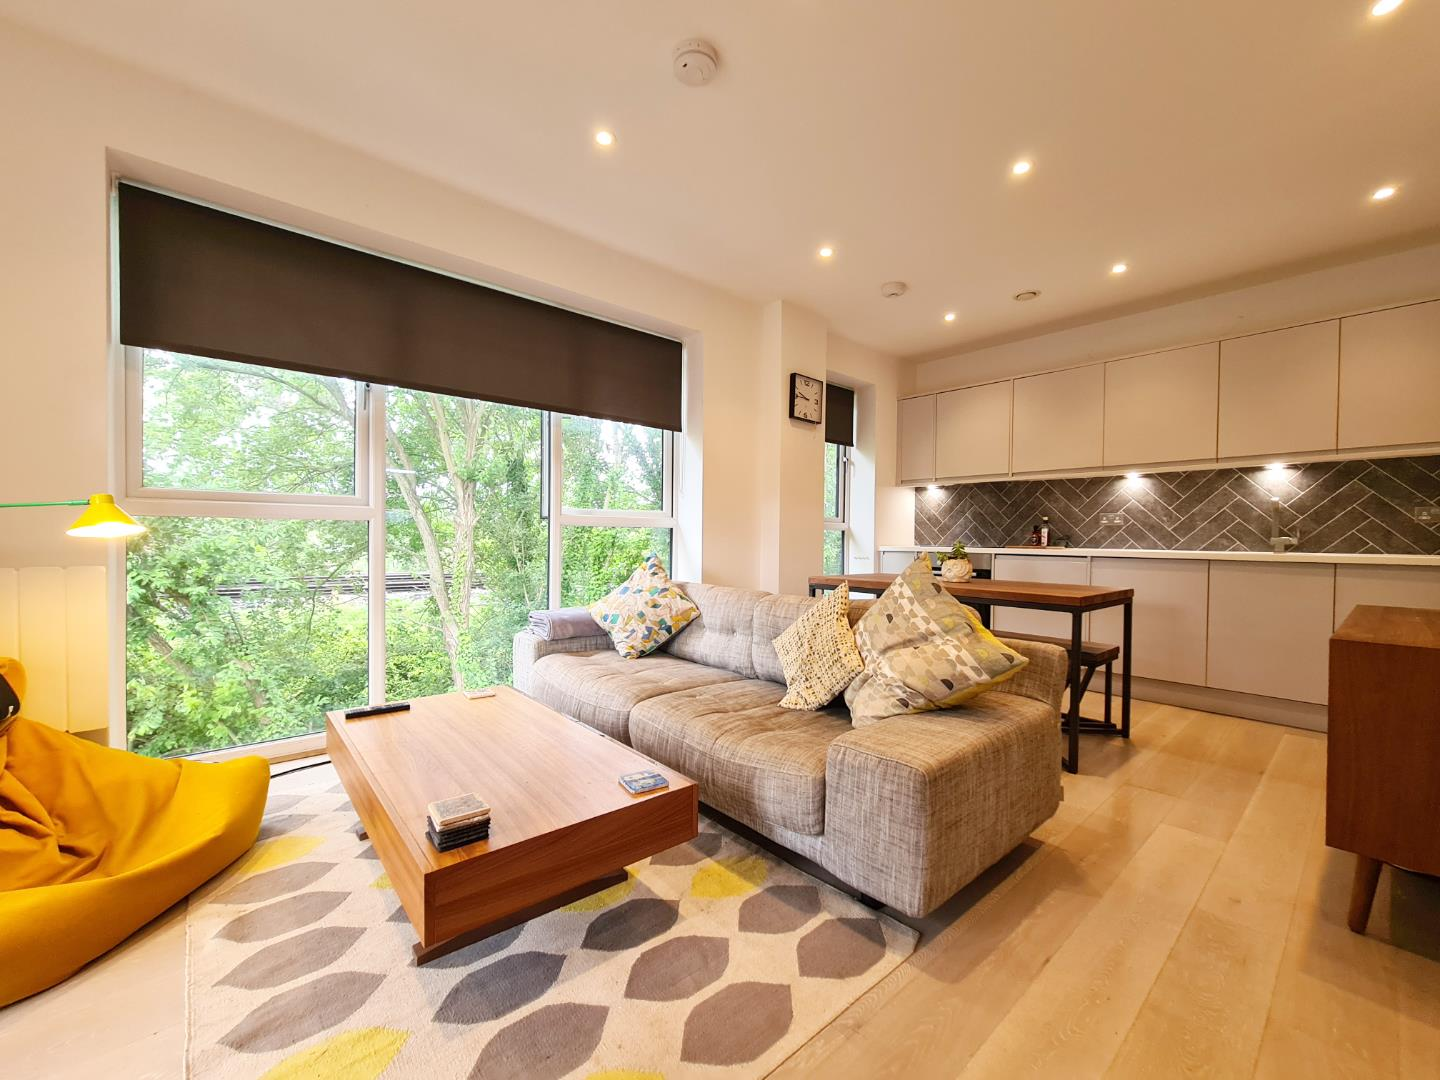 1 bed apartment to rent - Property Image 1